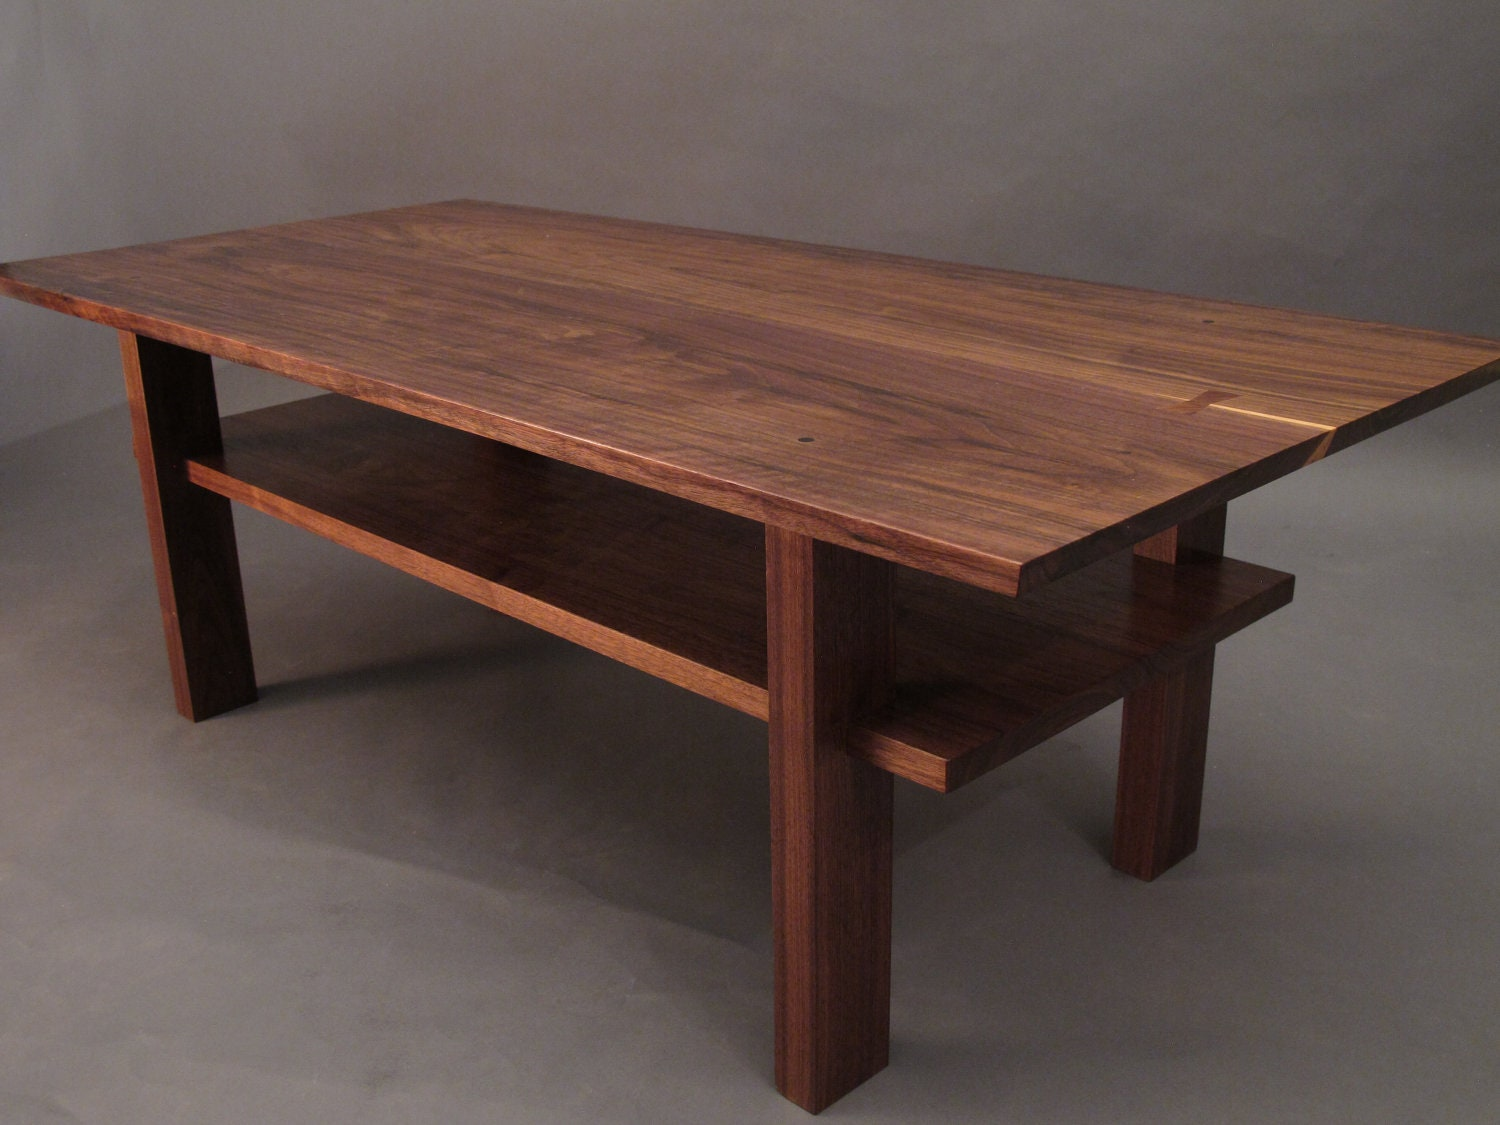 Walnut coffee table small wood tables for living room narrow for Small room table